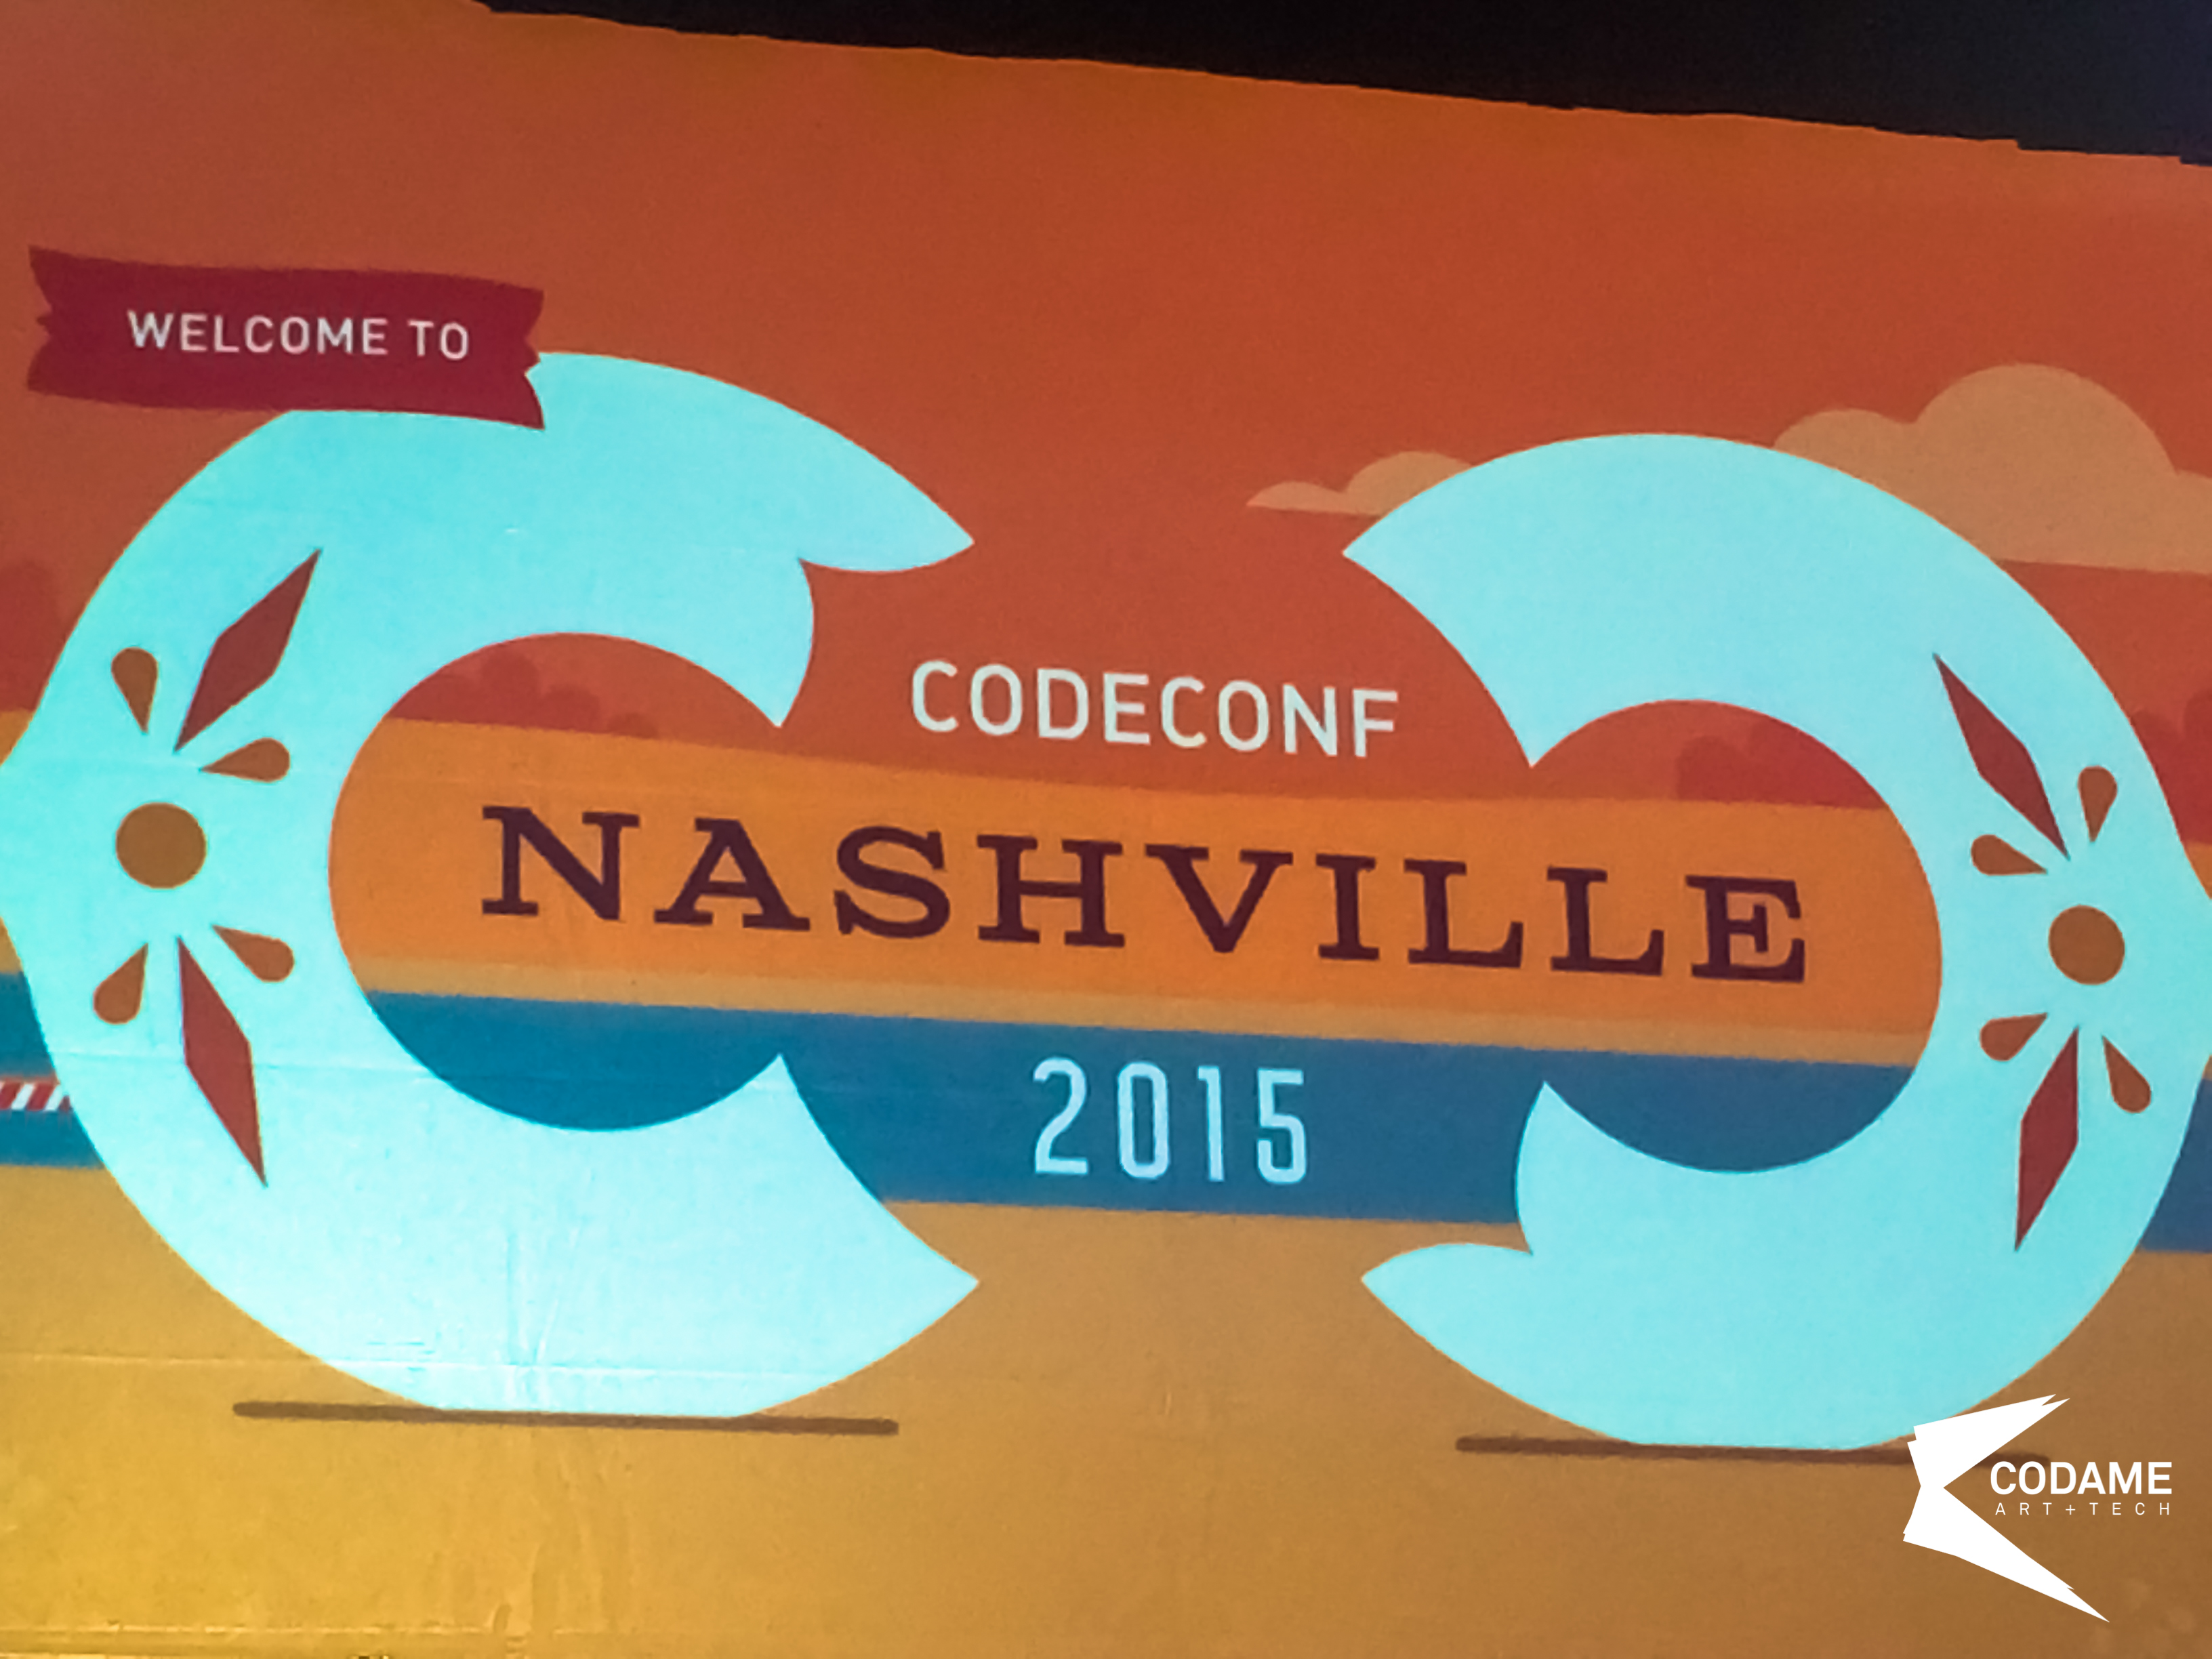 CODAME @CODECONF in Nashville